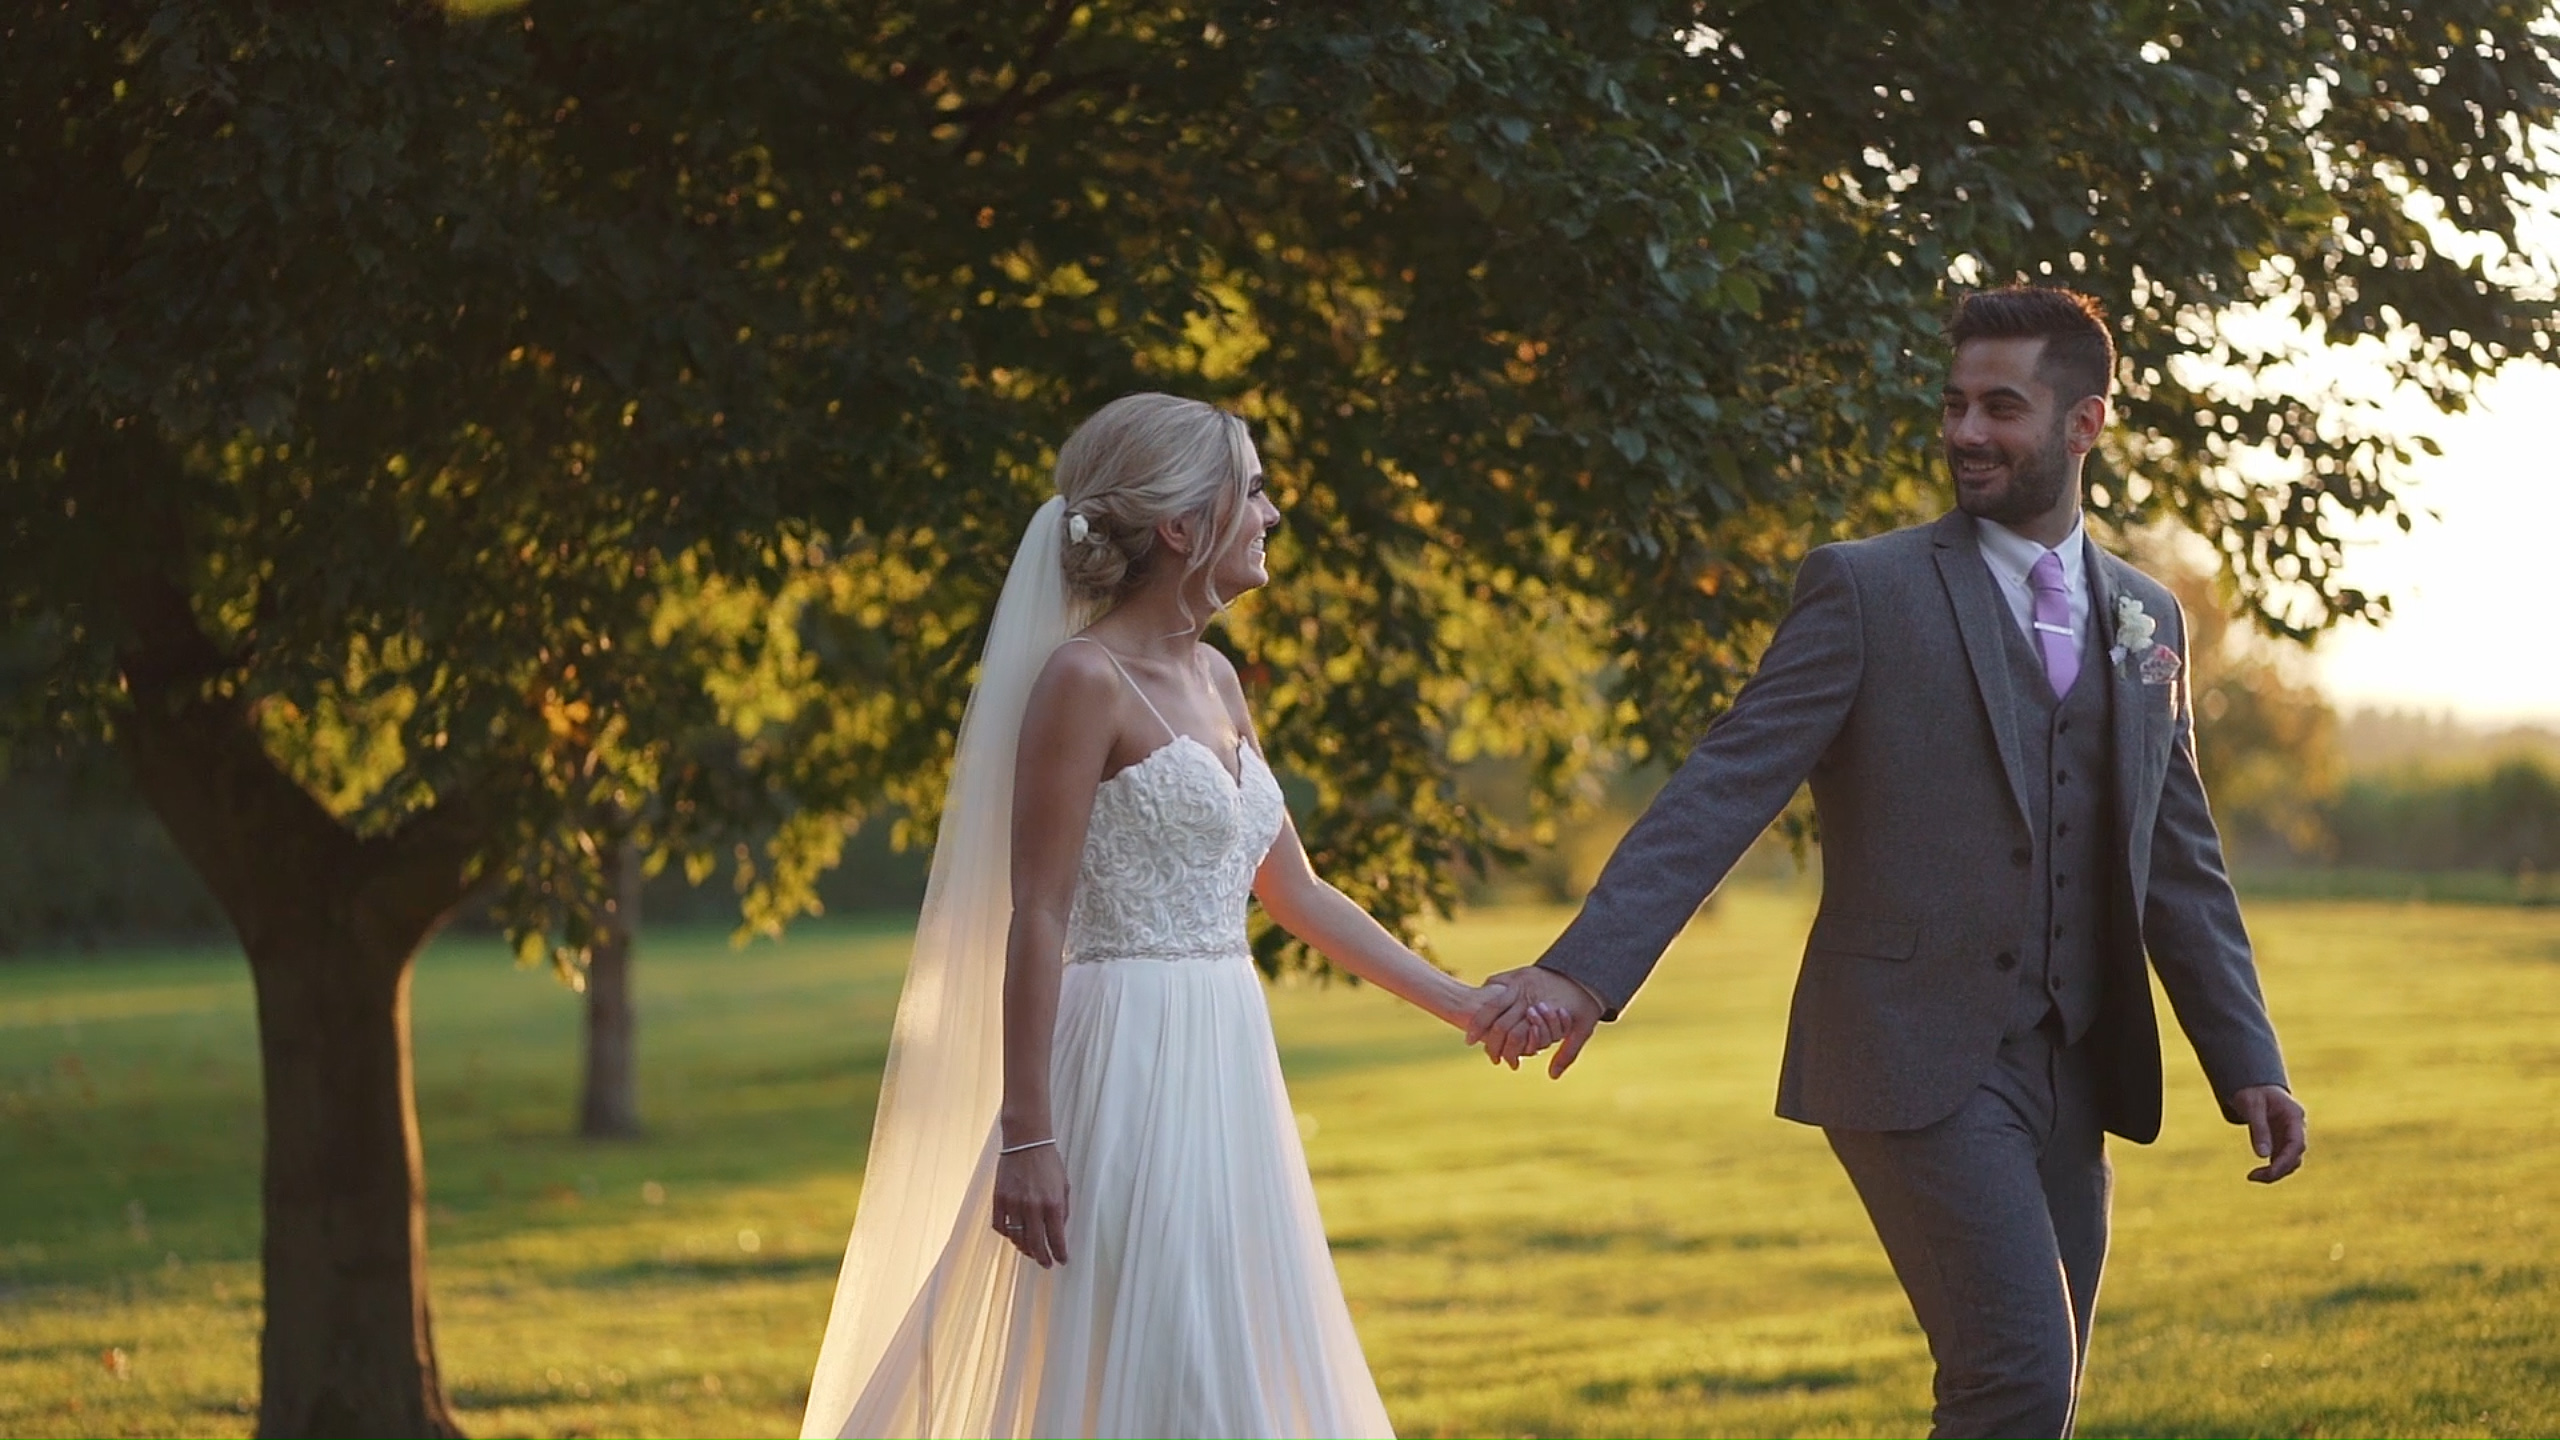 Wedding Videos in Staffordshire